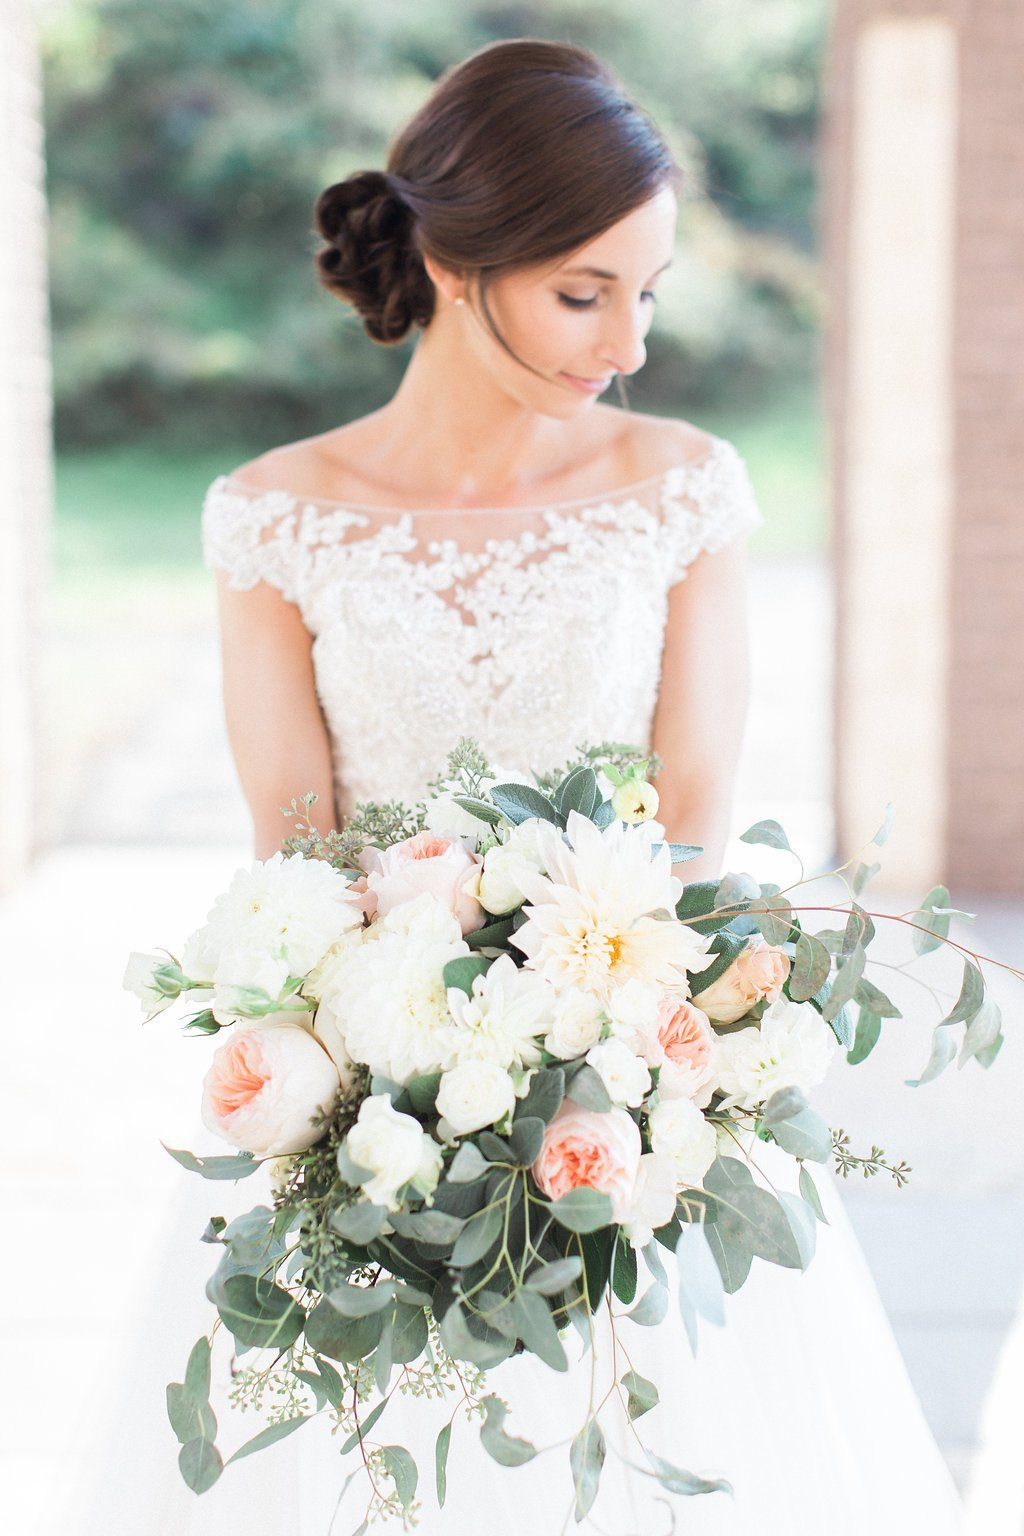 Bridal portraits in Maggie Sottero tulle wedding gown